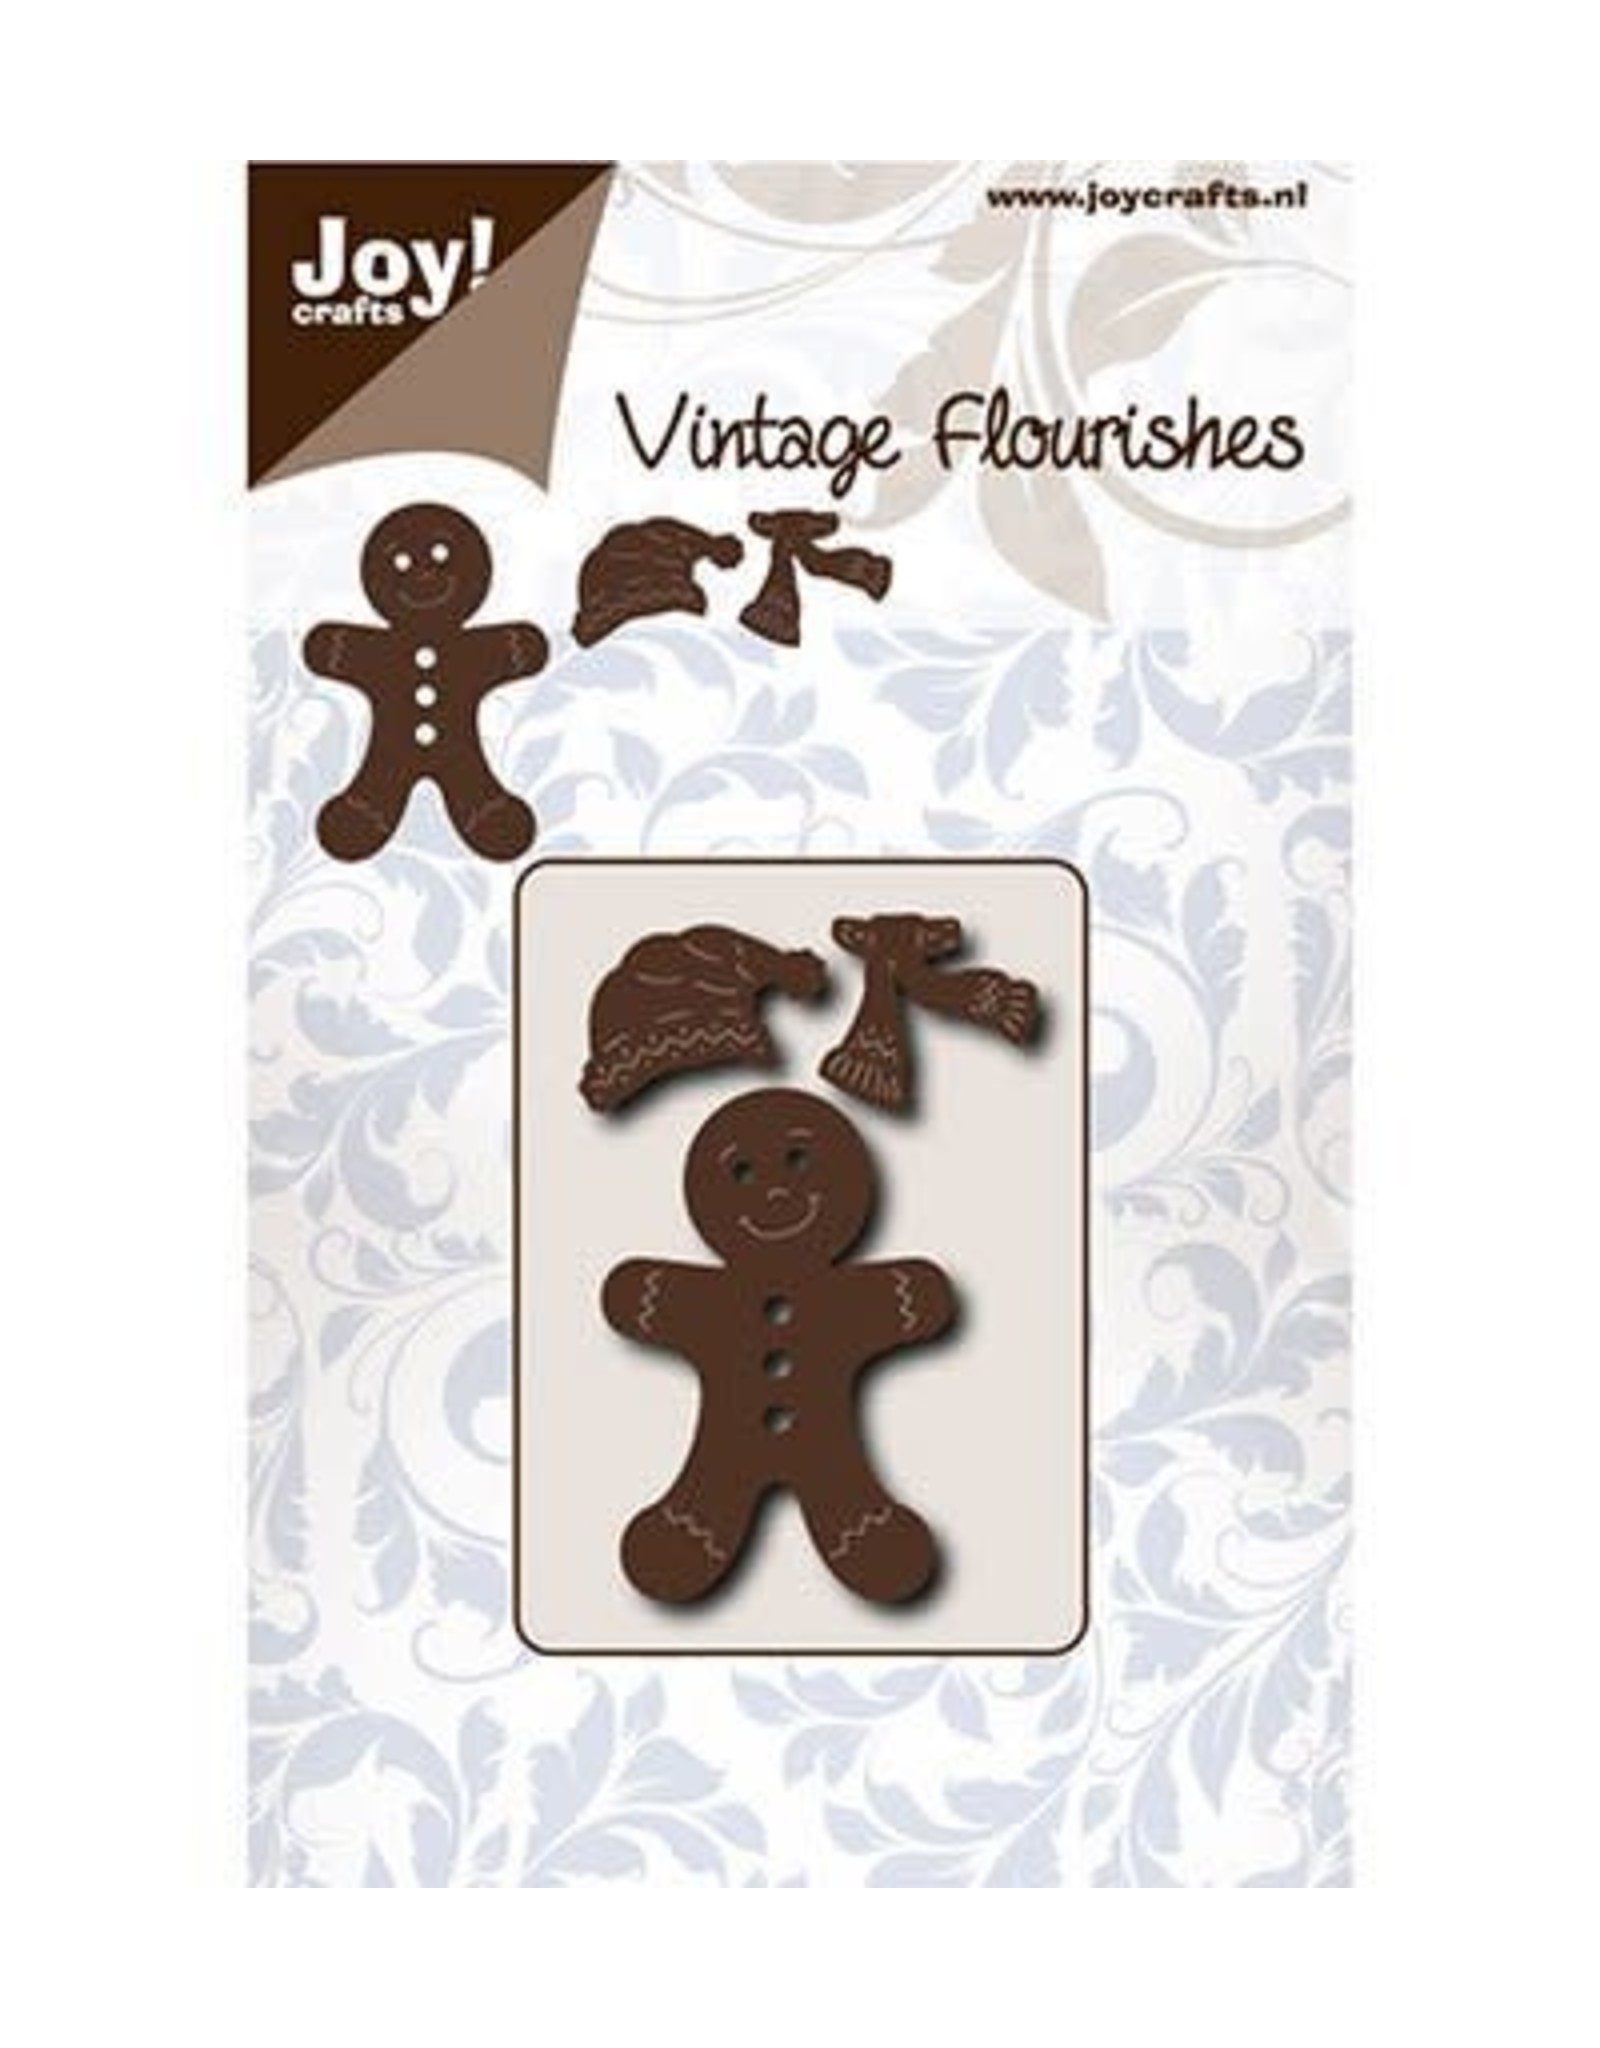 Joy Craft Joy Crafts Vintage Flourishes Gingerbread  mannetje 6003/0076